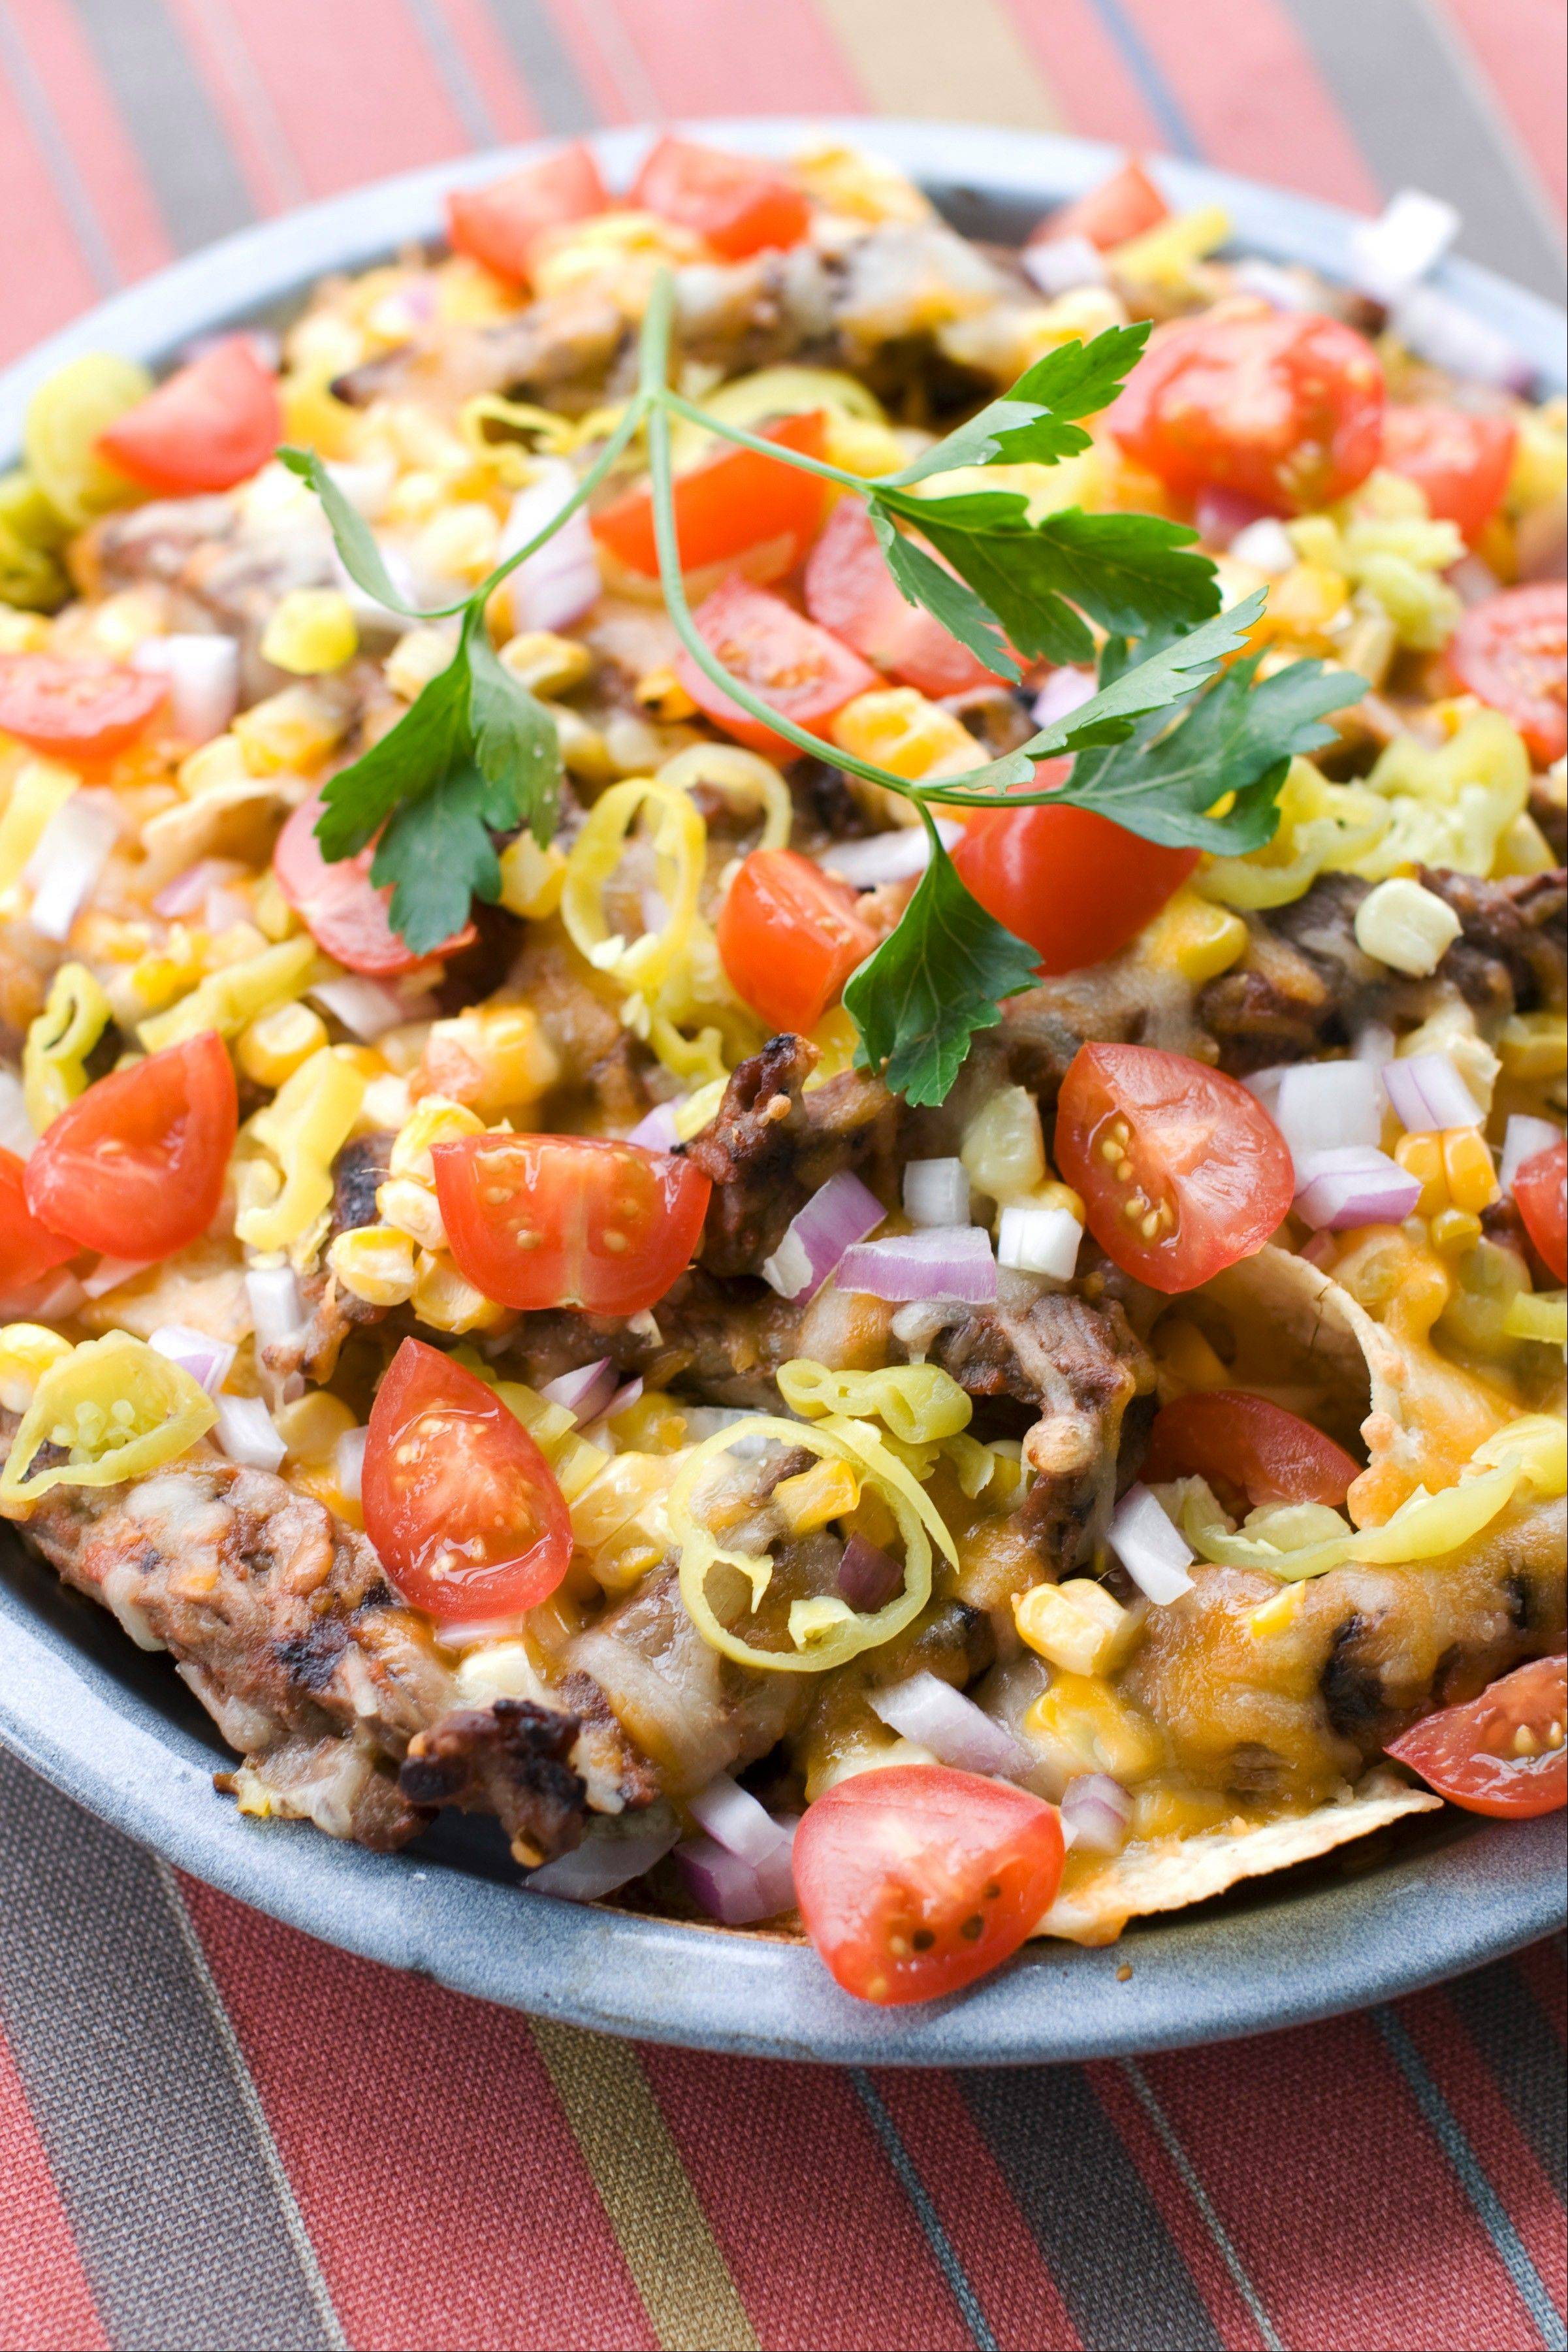 Corn and Steak Grilled Nachos